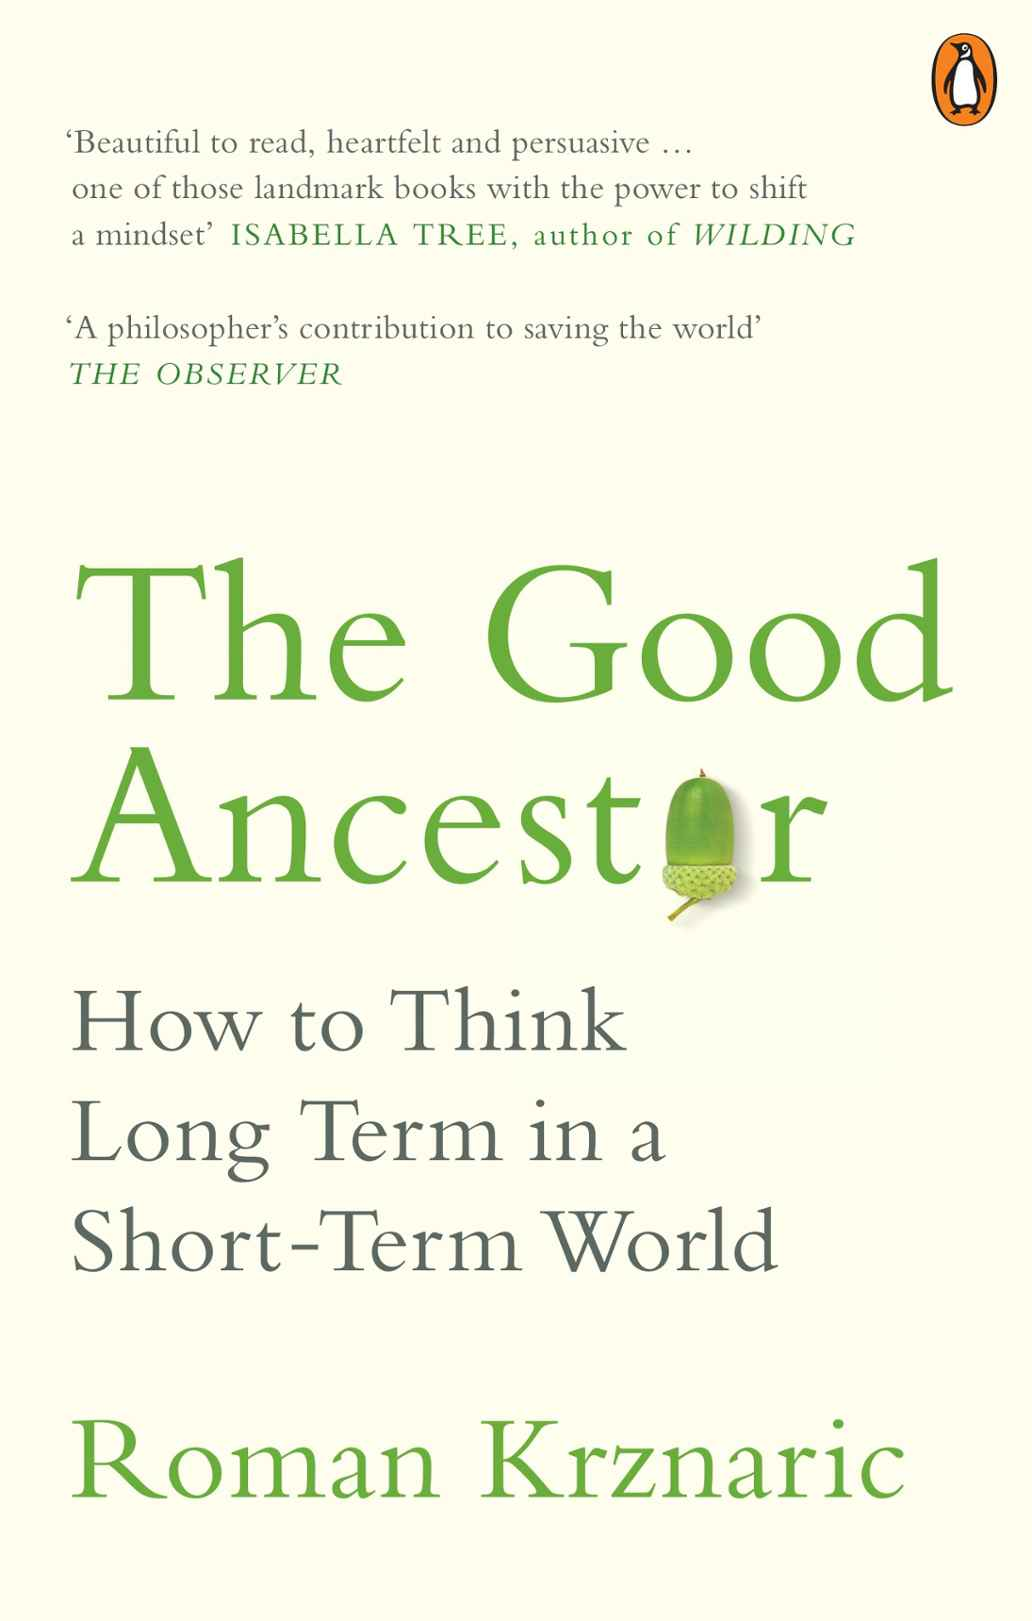 Front cover image of The Good Ancestor book